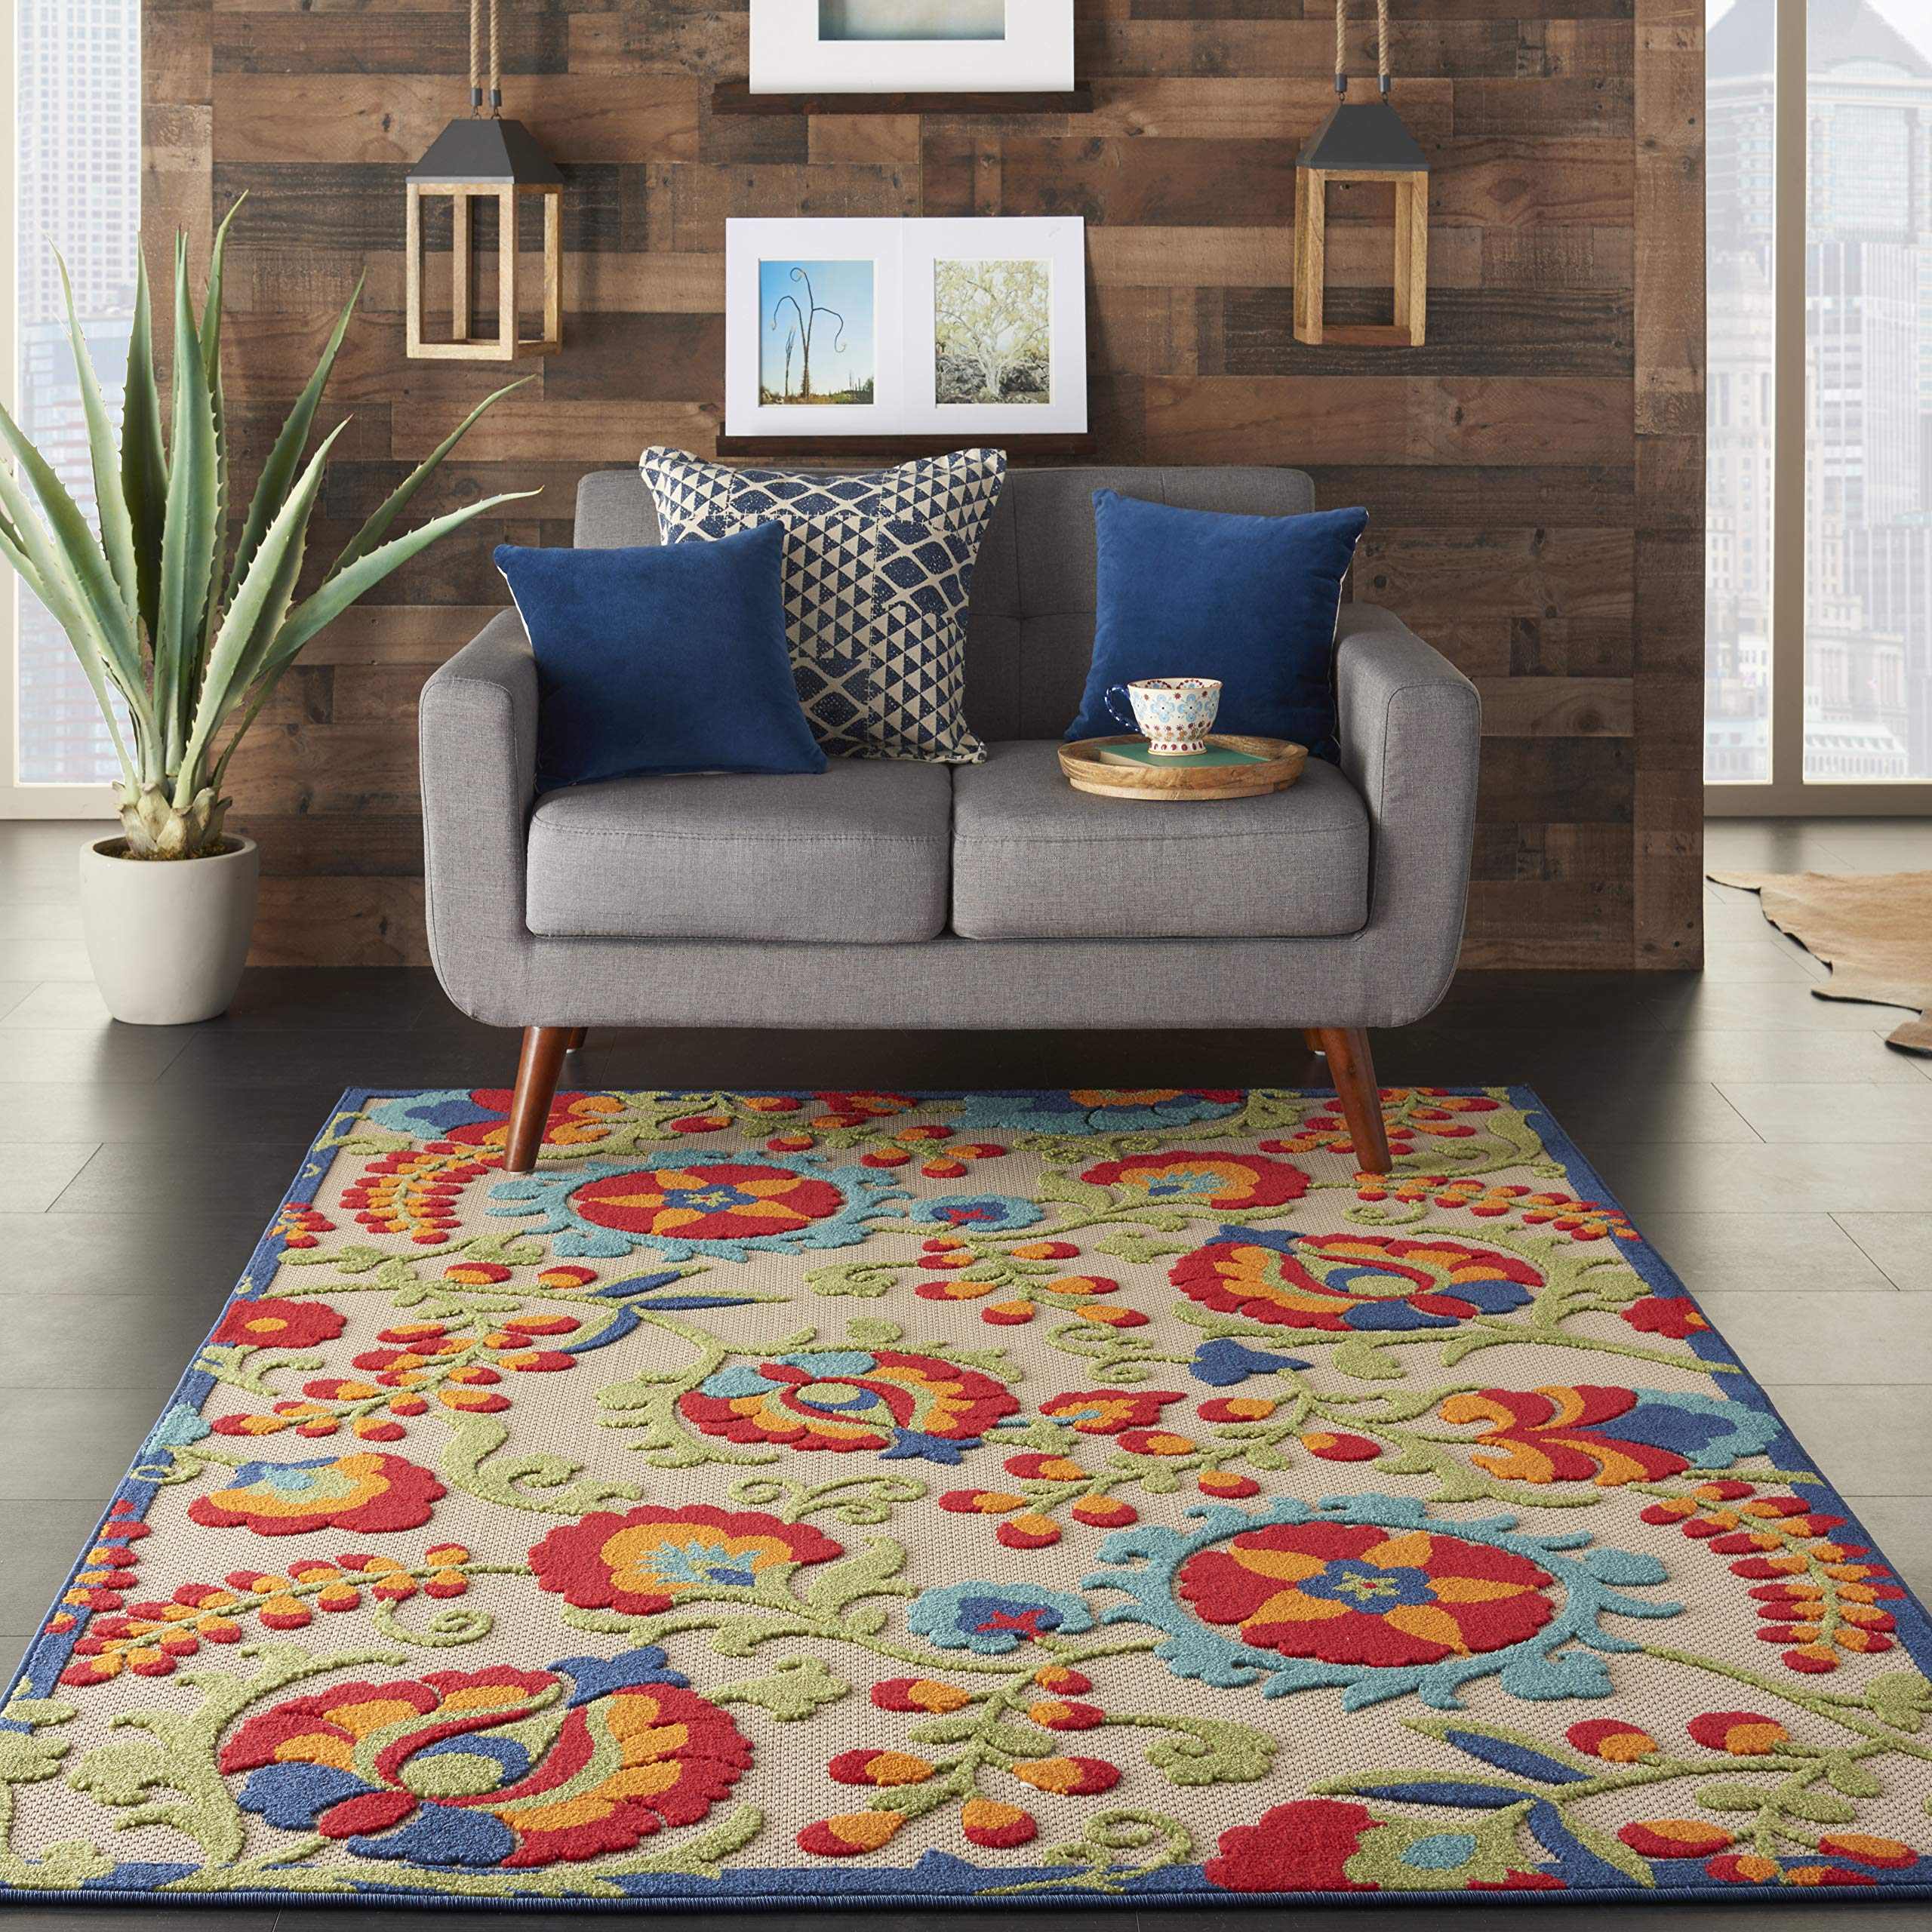 Nourison Aloha  Multicolor Indoor/Outdoor Area Rug  5 feet 3 Inches by 7 Feet 5 Inches, 5'3''X7'5''